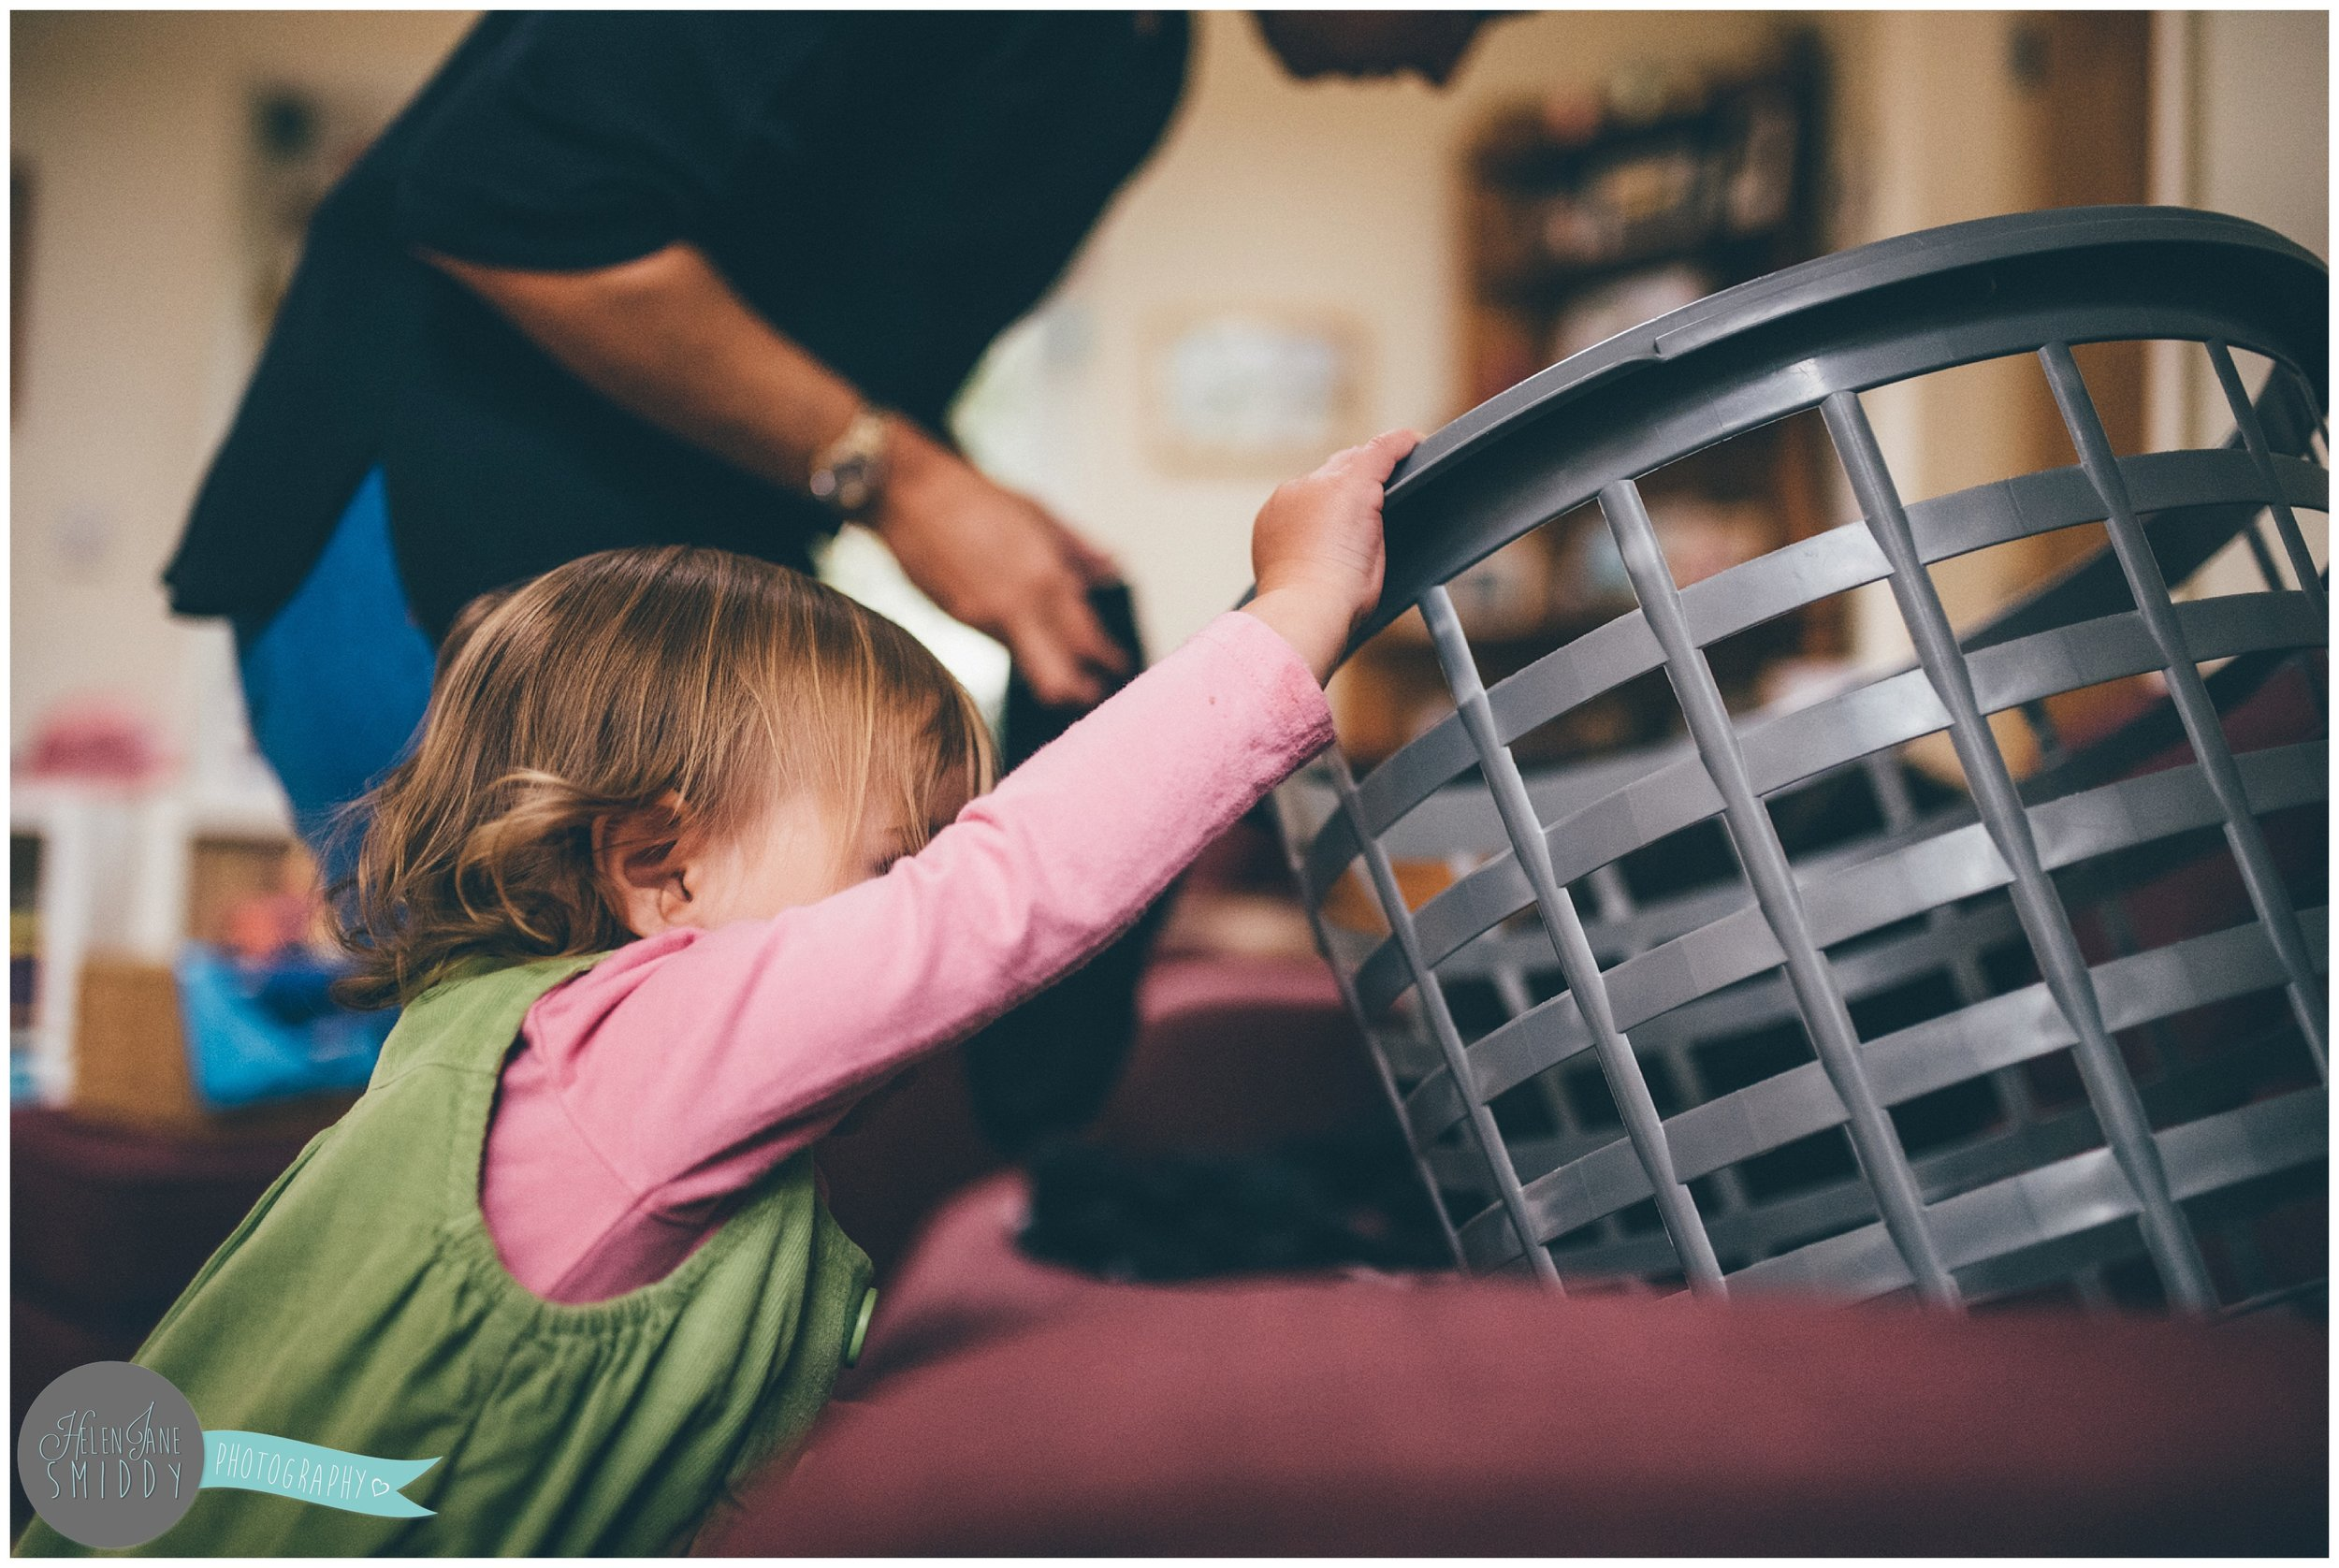 Helping Mummy with laundry during A Day In The Life photoshoot in Frodsham, Cheshire.